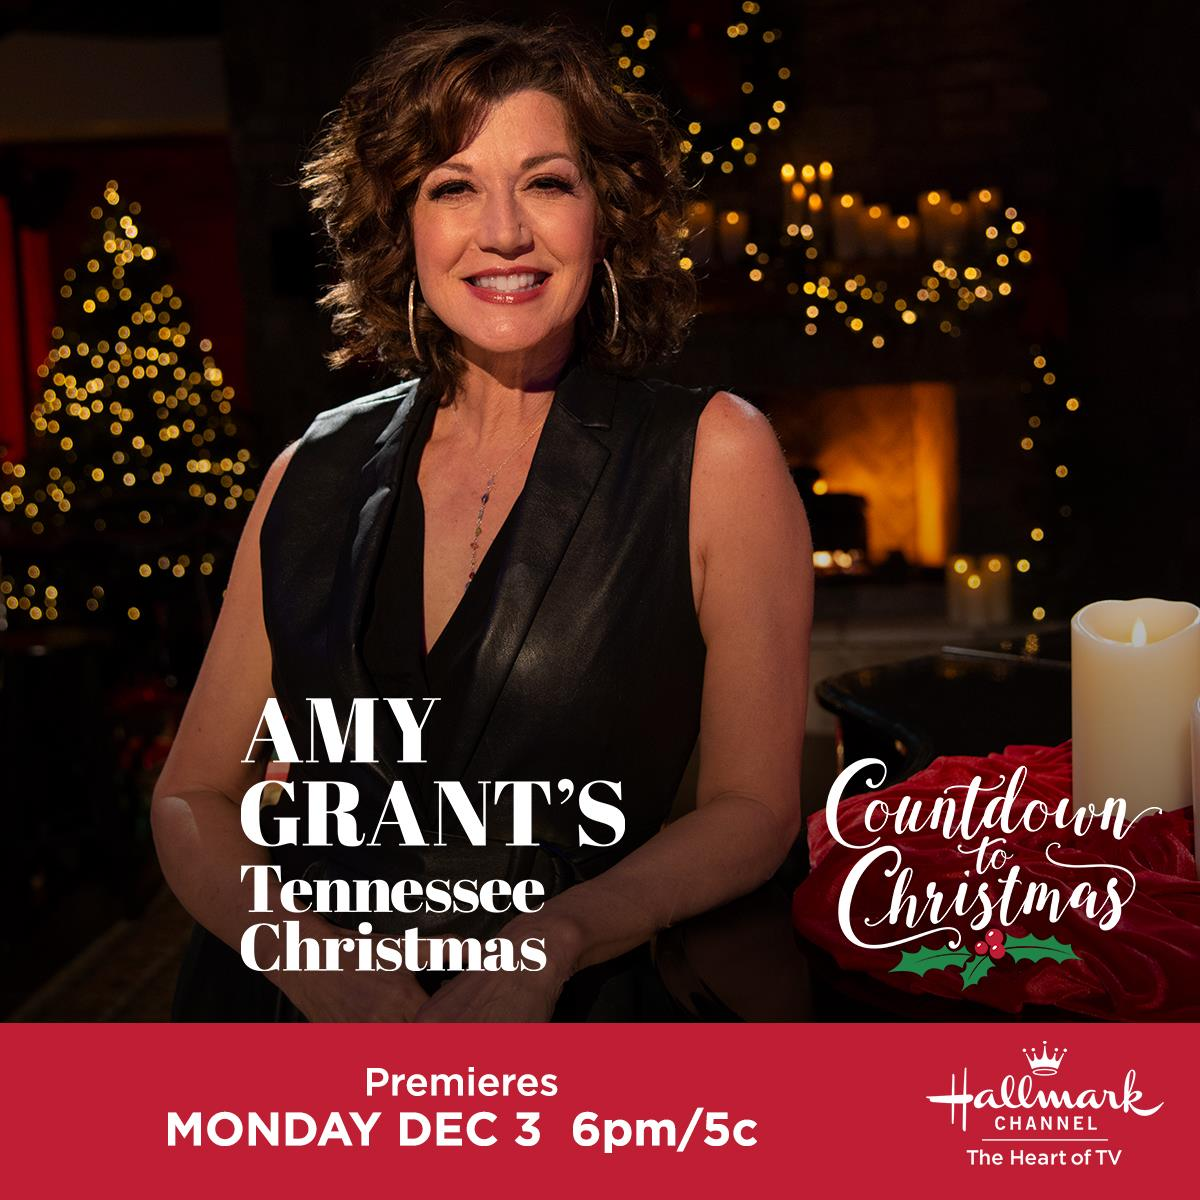 Hotwire Communications On Twitter We Can T Wait For The Premiere Of Amygrant S New Hallmark Channel Usa Original Movie Tennessee Christmas Catch It Monday Dec 3rd As Part Of Countdowntochristmas Https T Co Ciishkxcjy